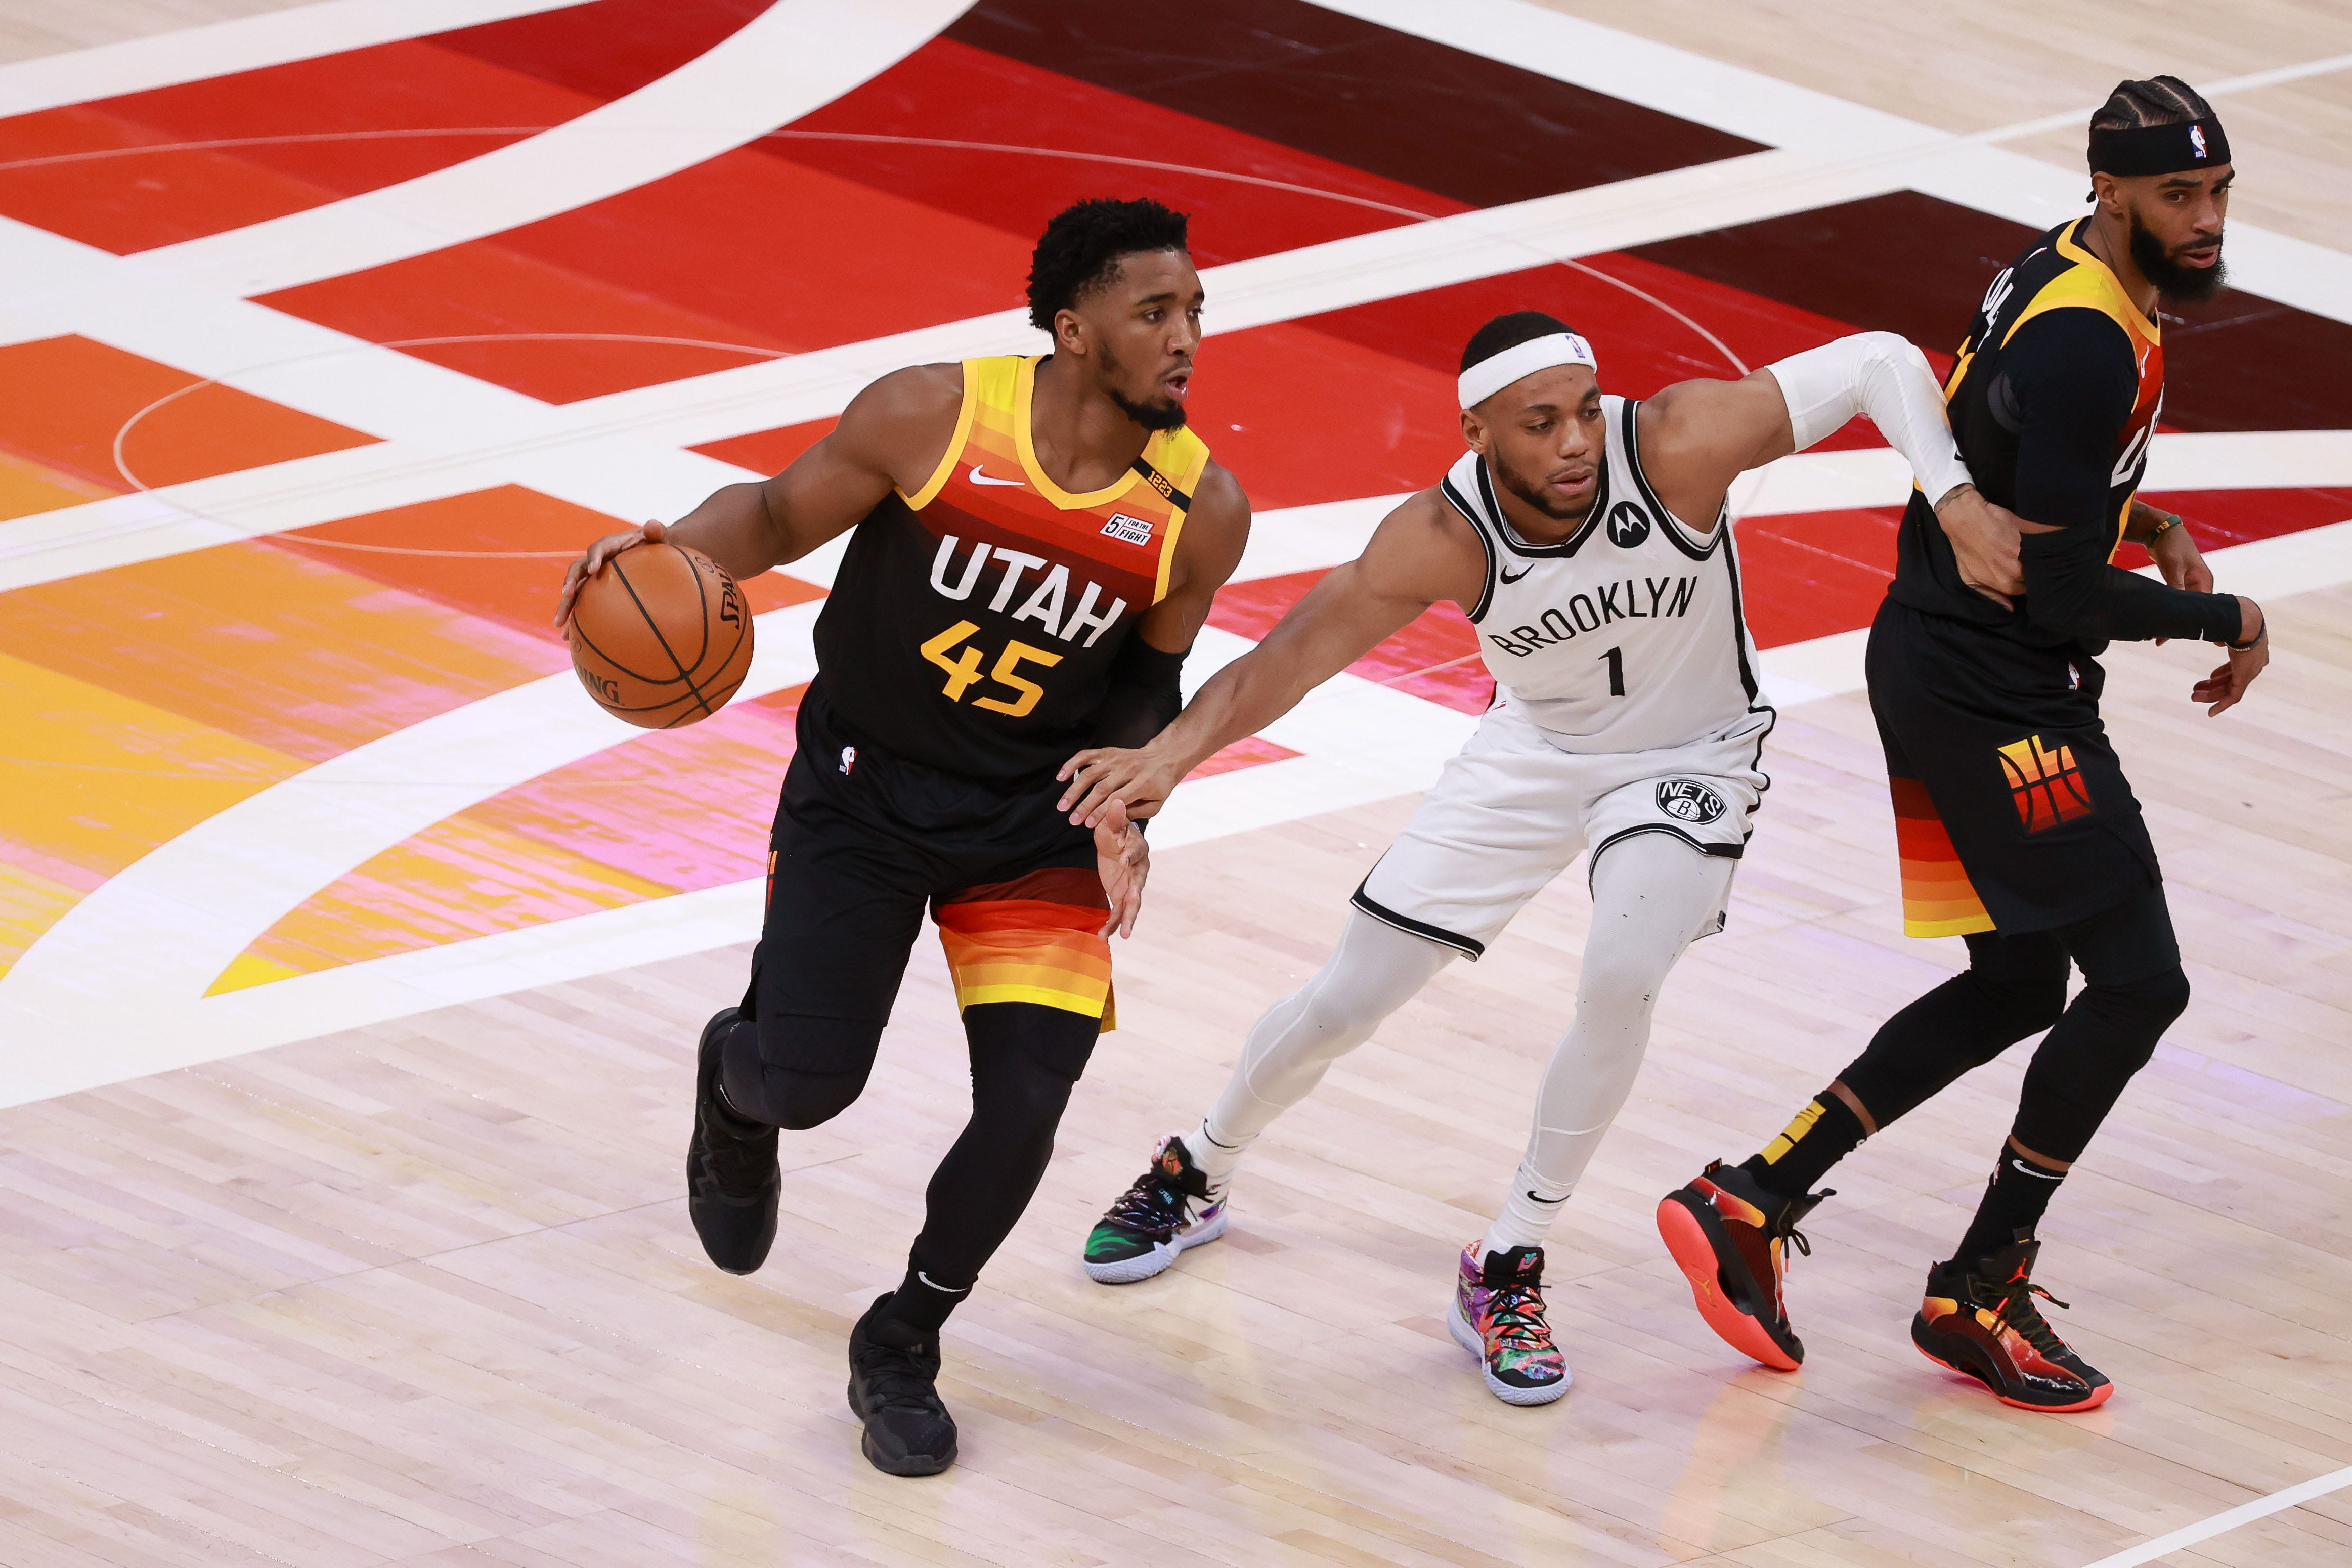 NBA playoff preview picks: Is Nets over Jazz a safe bet? Some of our experts think so